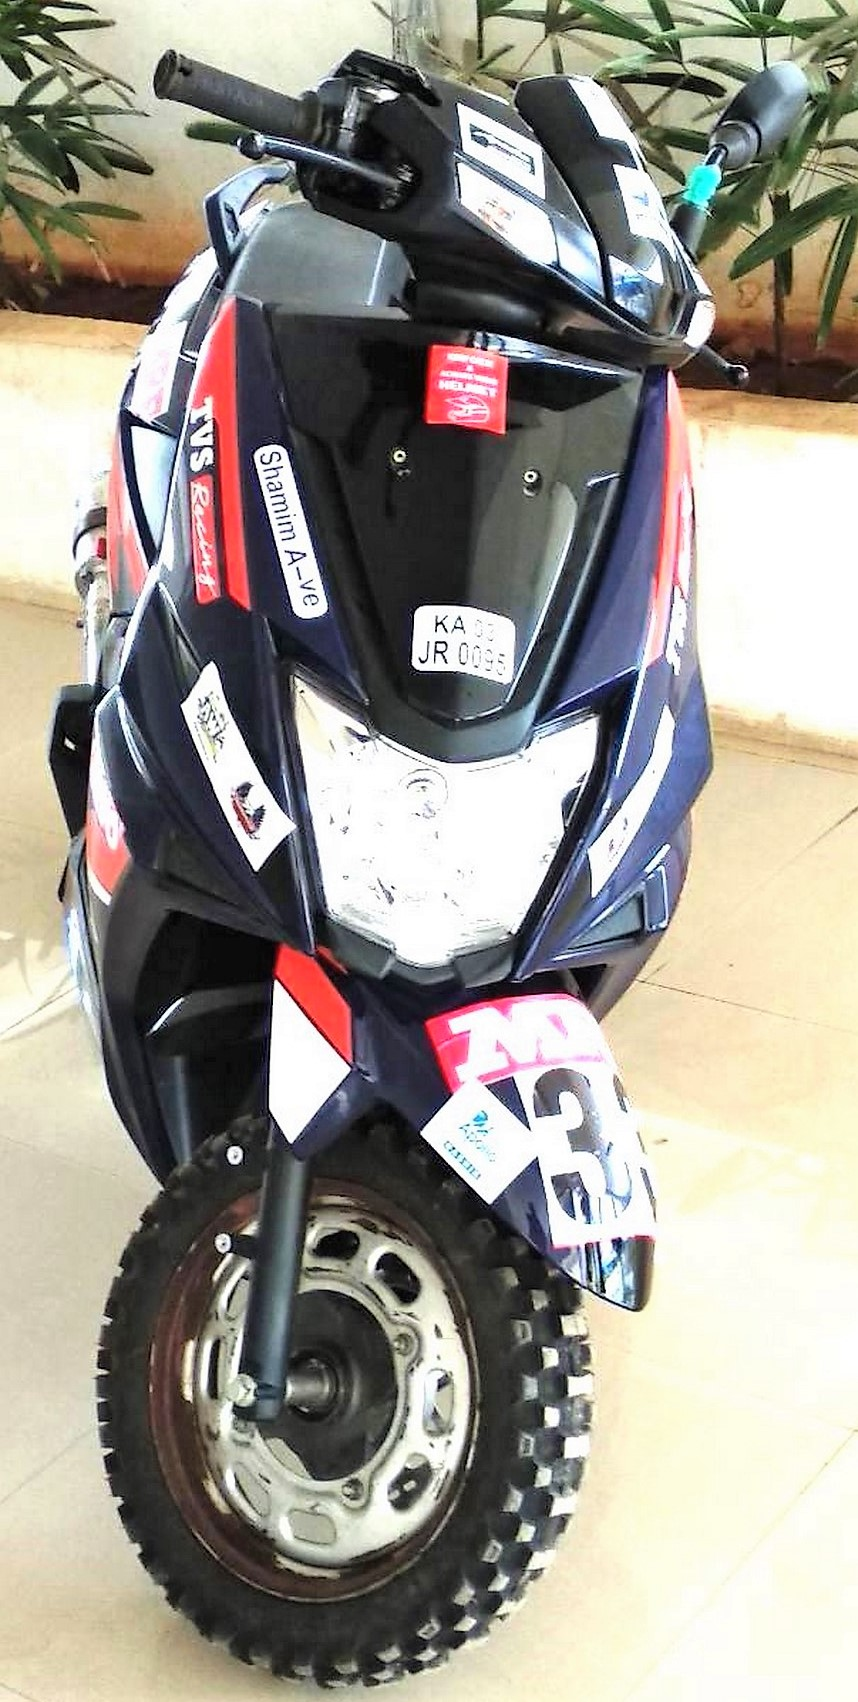 20HP TVS NTORQ SXR Race Version Officially Unveiled